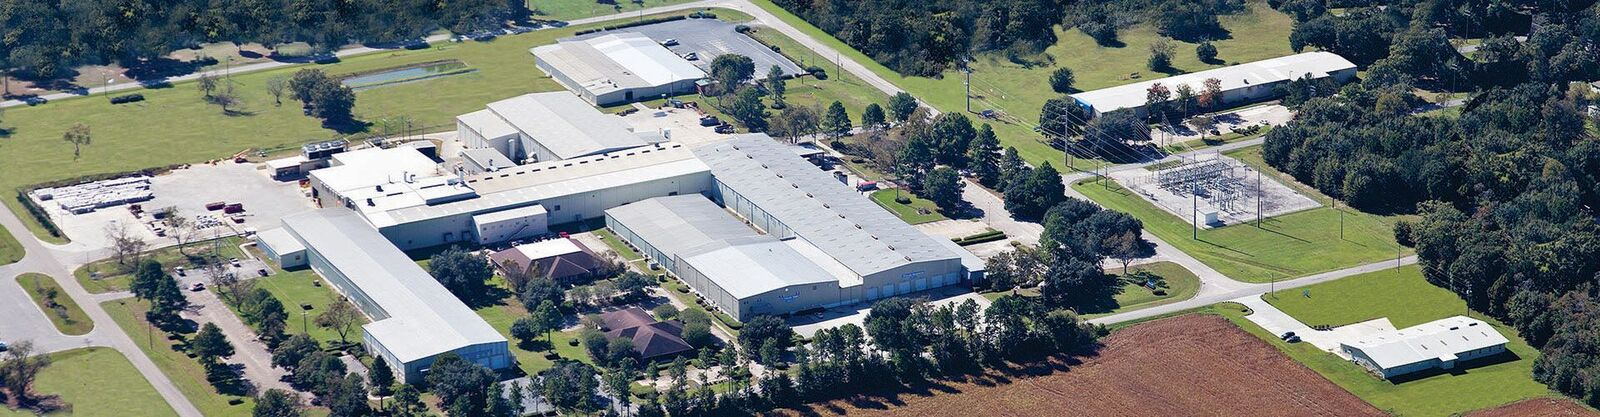 Vulcan Inc. Campus in Foley, AL